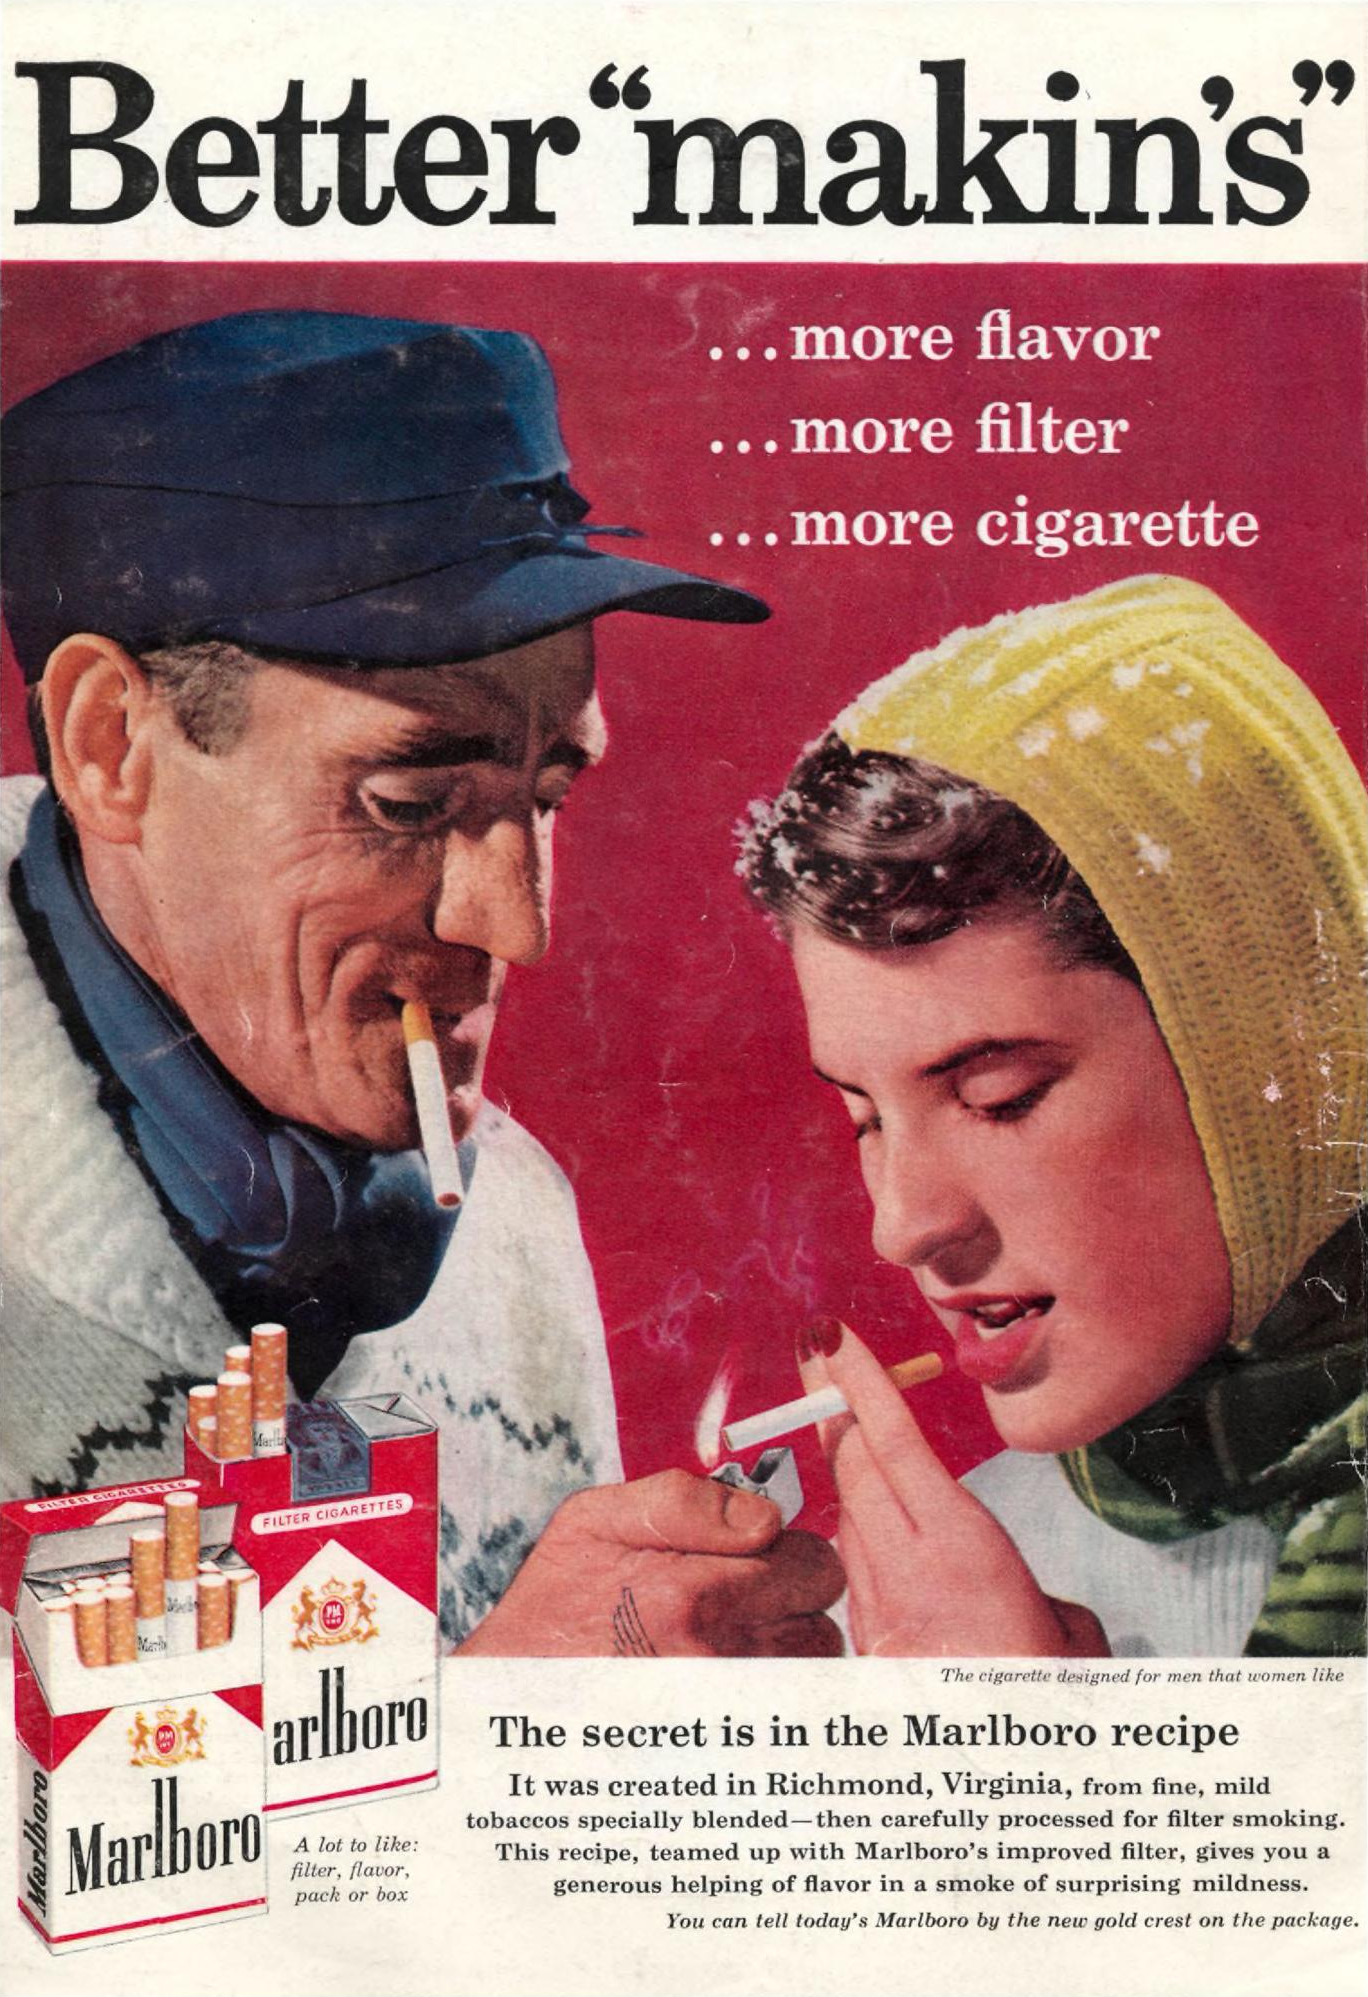 Marlboro - published in Sports Illustrated - December 22, 1958